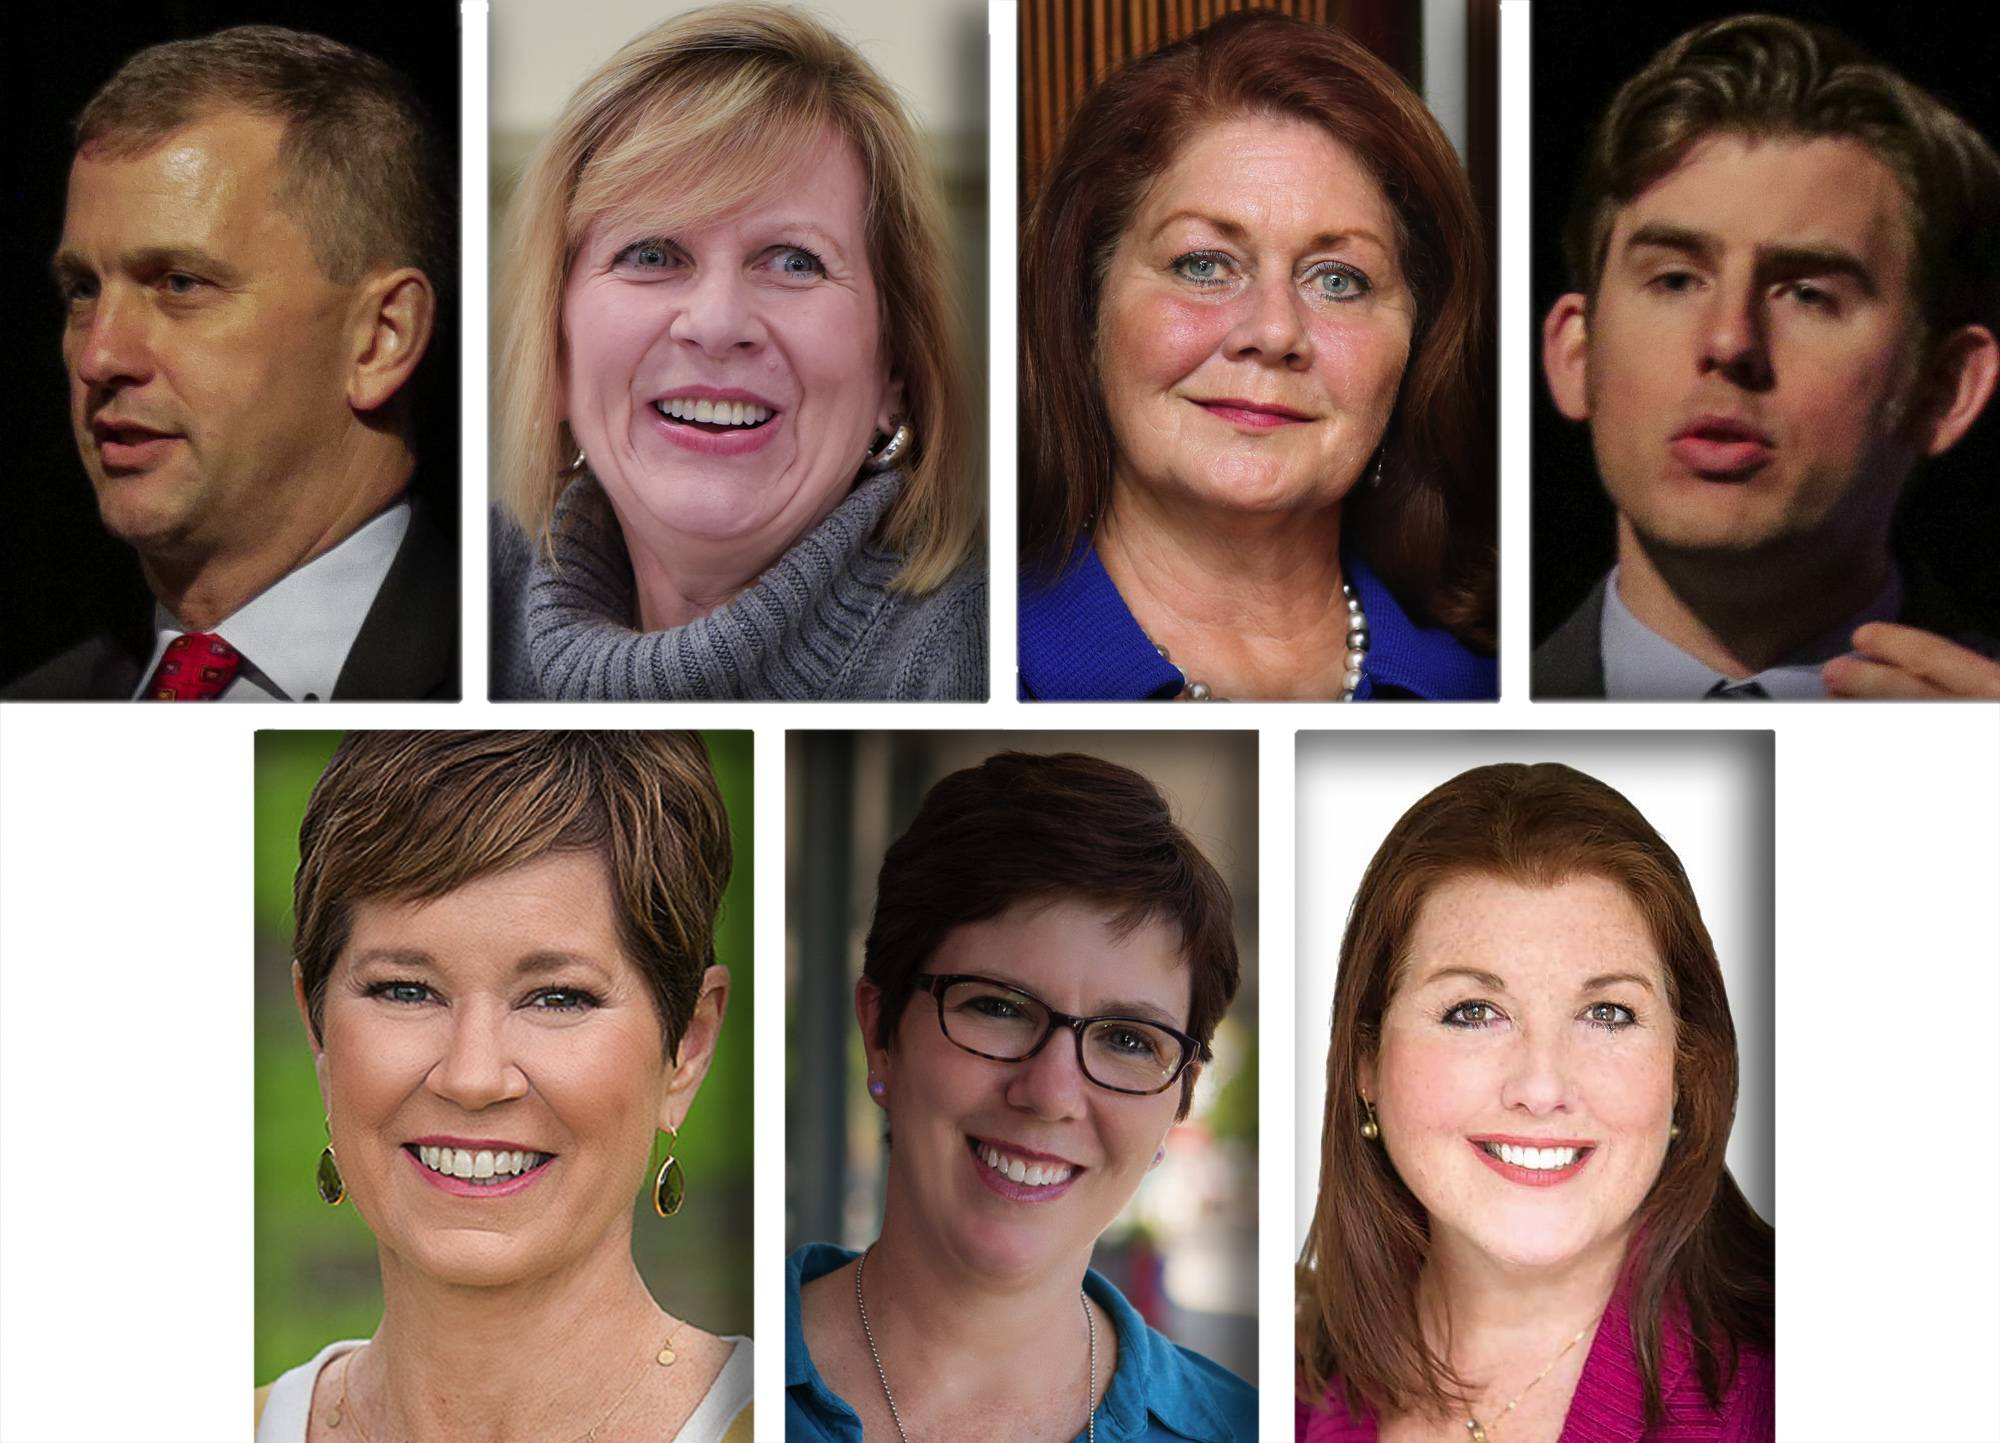 Upper from left, Sean Casten, Carole Cheney, Amanda Howland, Ryan Huffman, and lower from left, Kelly Mazeski, Becky Anderson Wilkins, Jennifer Zordani are Democrat candidates in Tuesday's 6th Congressional District primary.